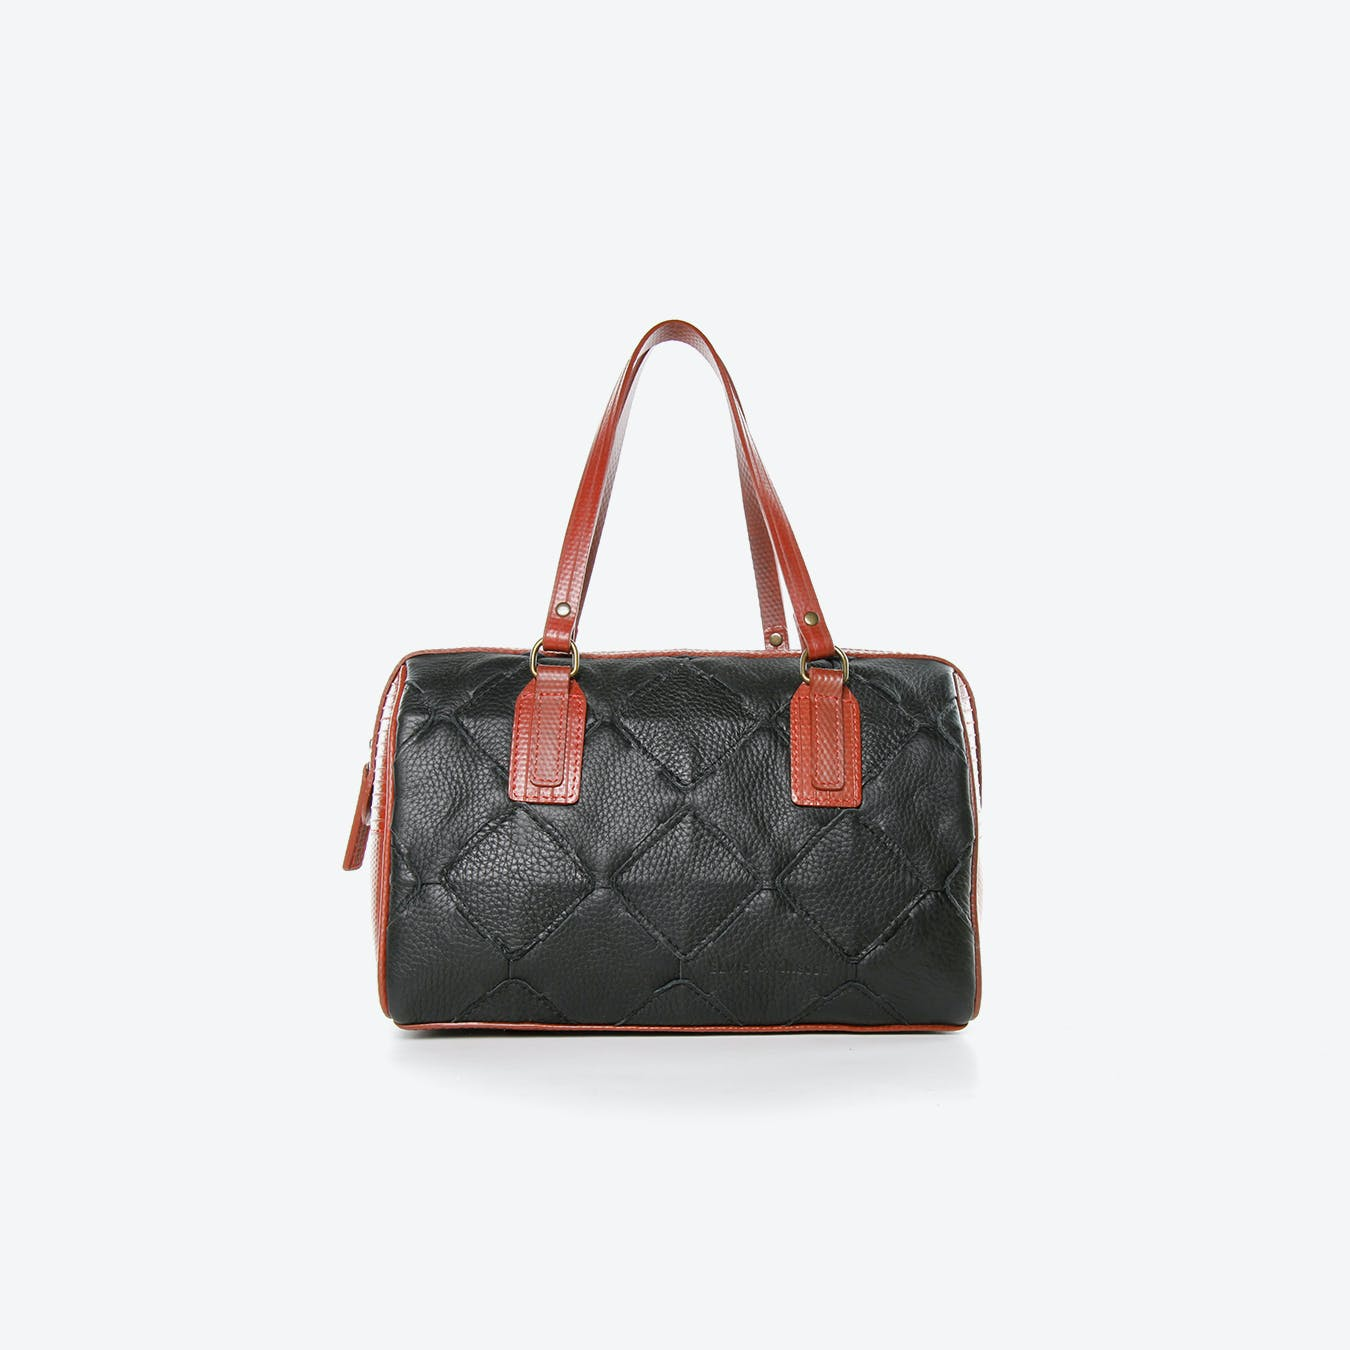 Post Bag Fire Hide in Black Burberry Leather And Red Fire-Hoses